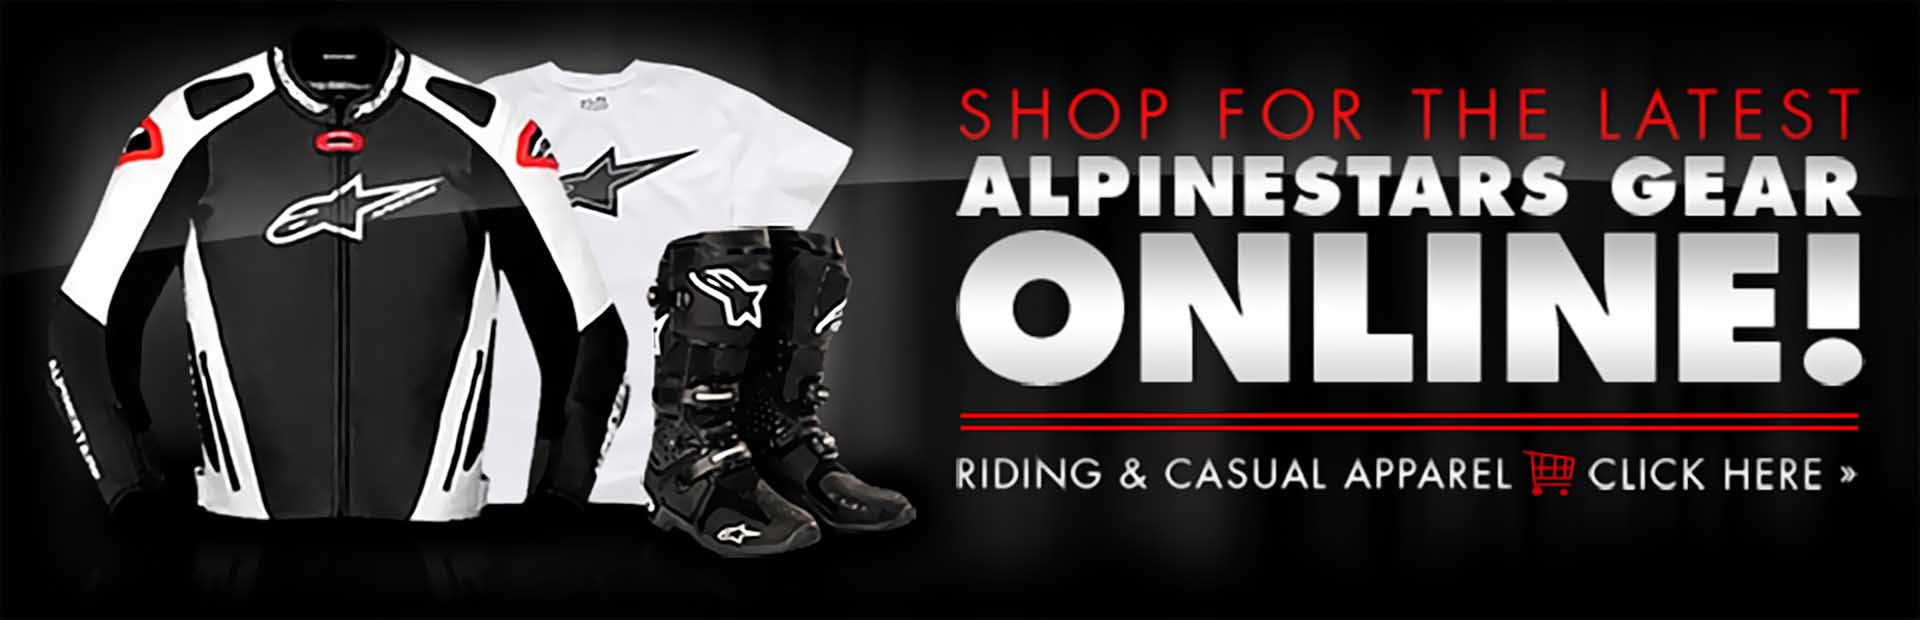 Click here to browse the latest Alpinestars gear online!